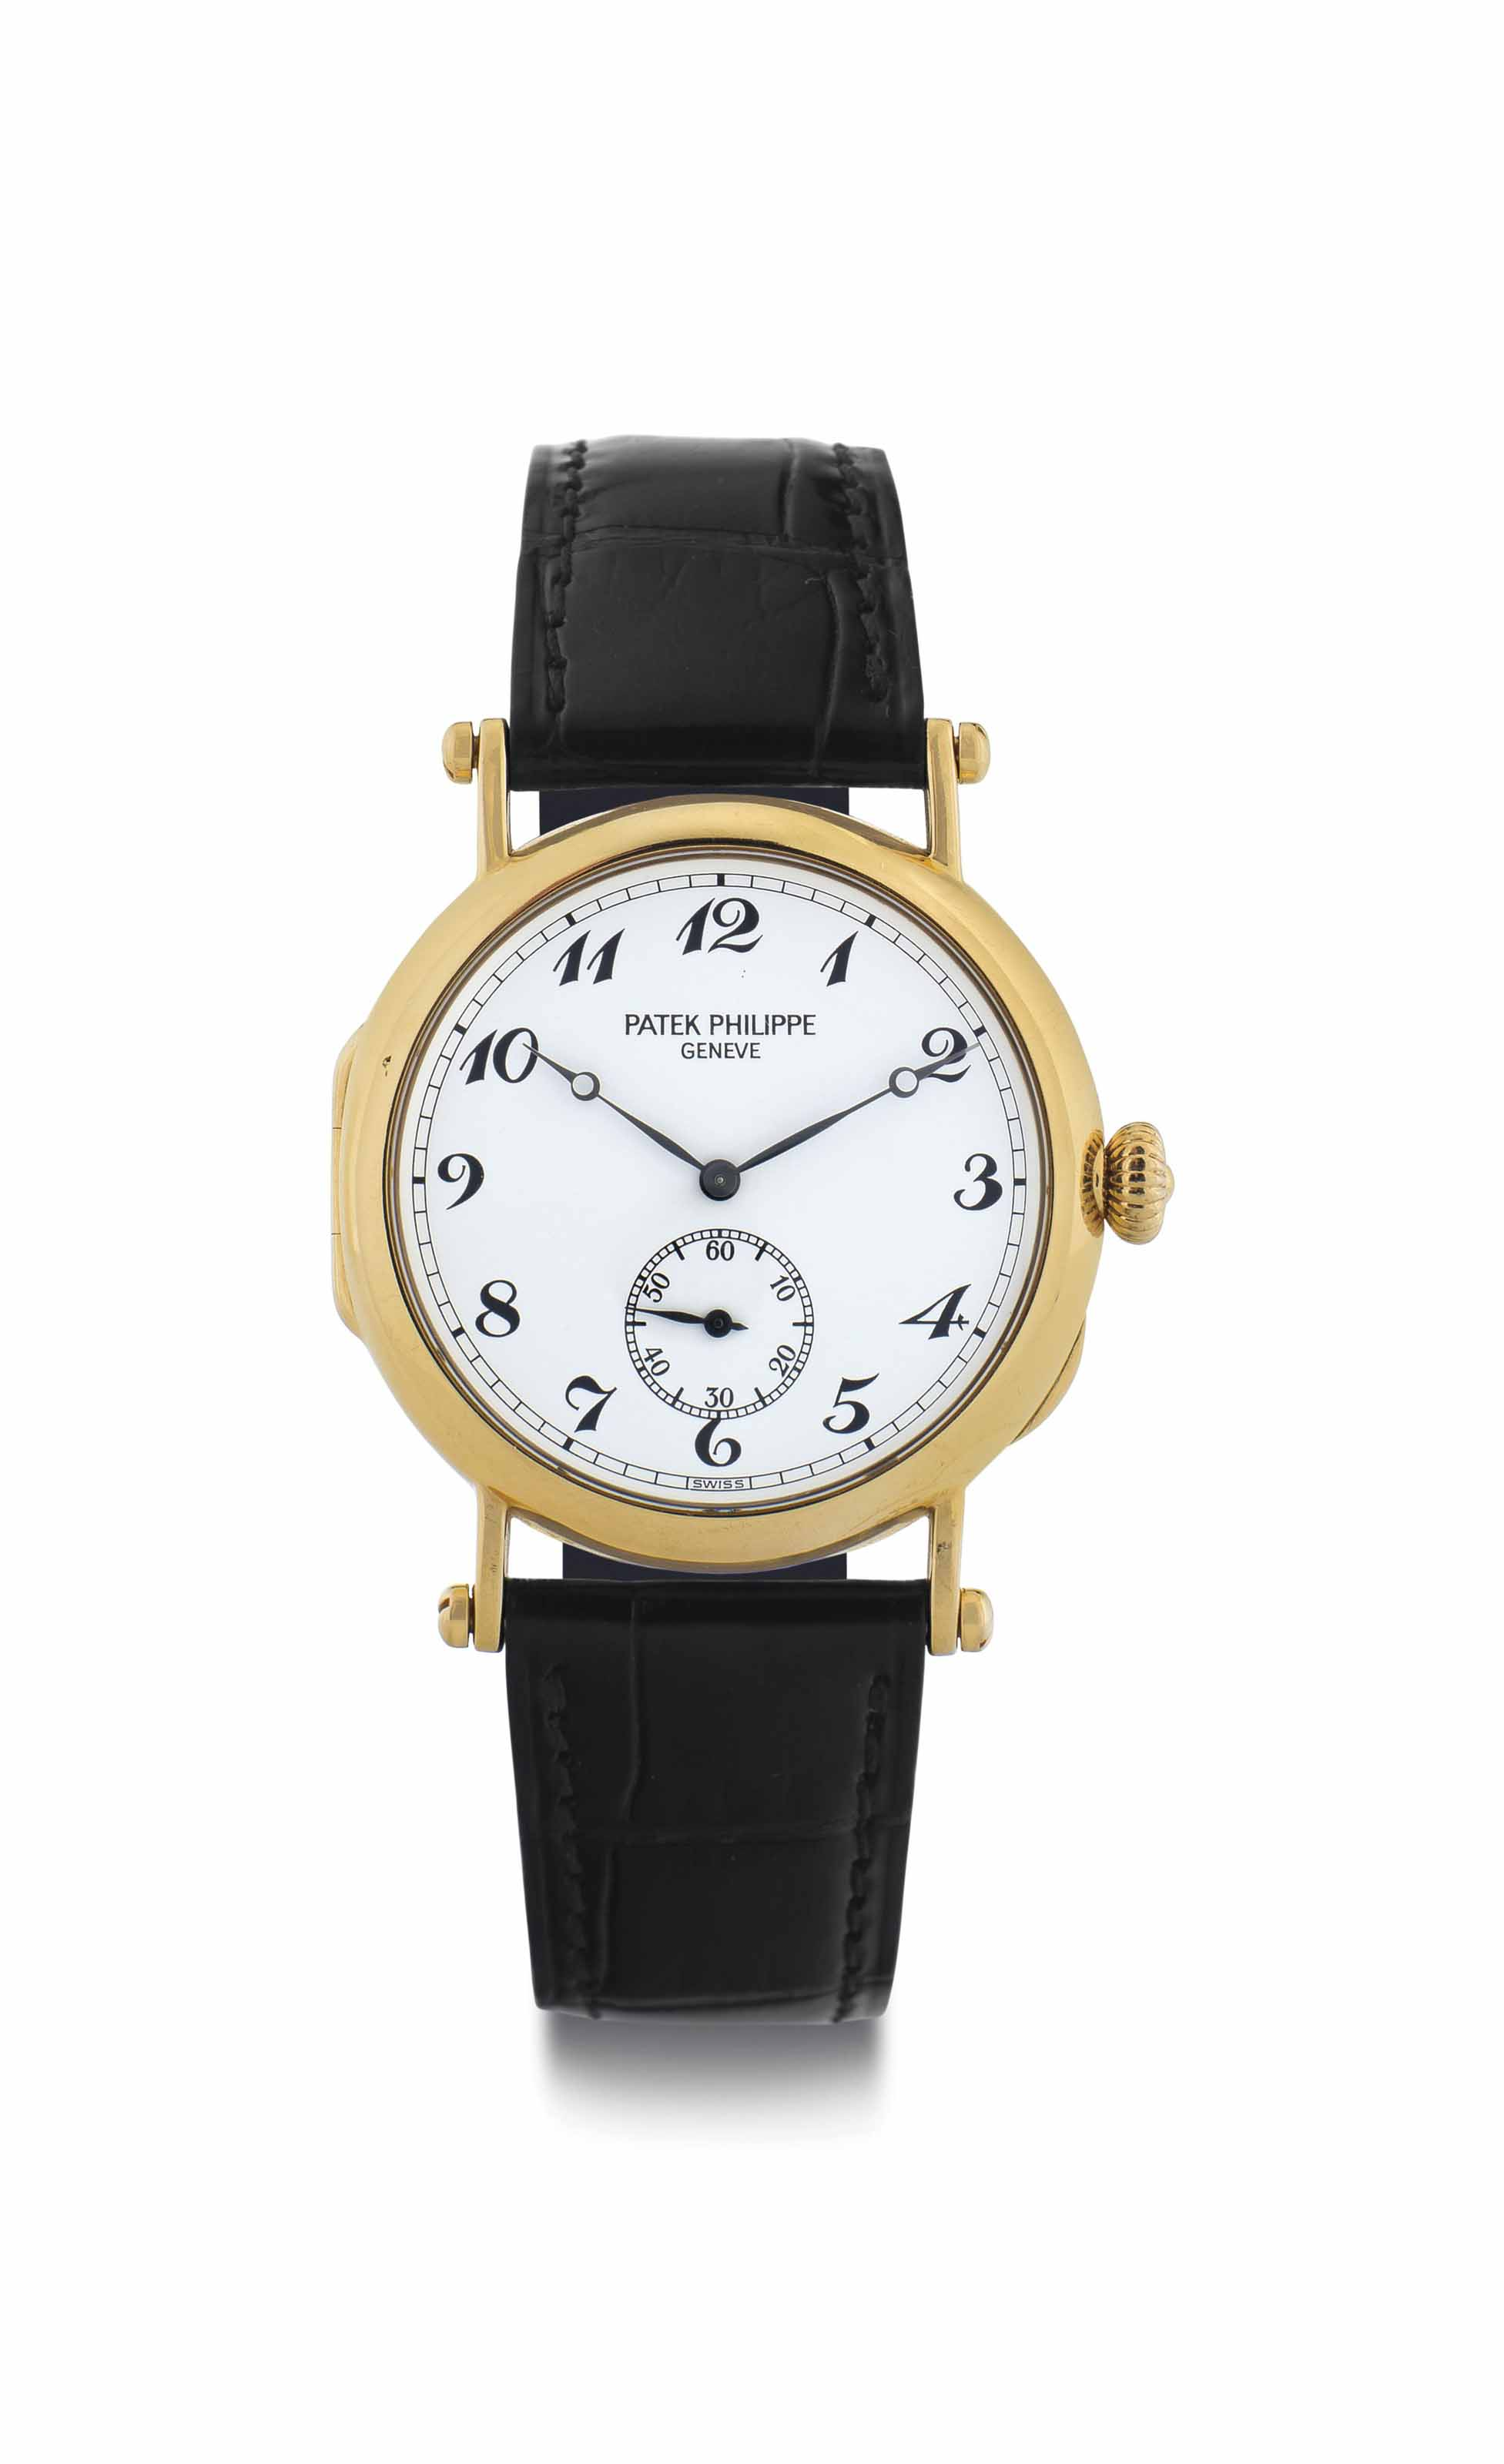 Patek Philippe. A Fine Limited Edition 18k Gold Wristwatch with Breguet Numerals and Original Certificate